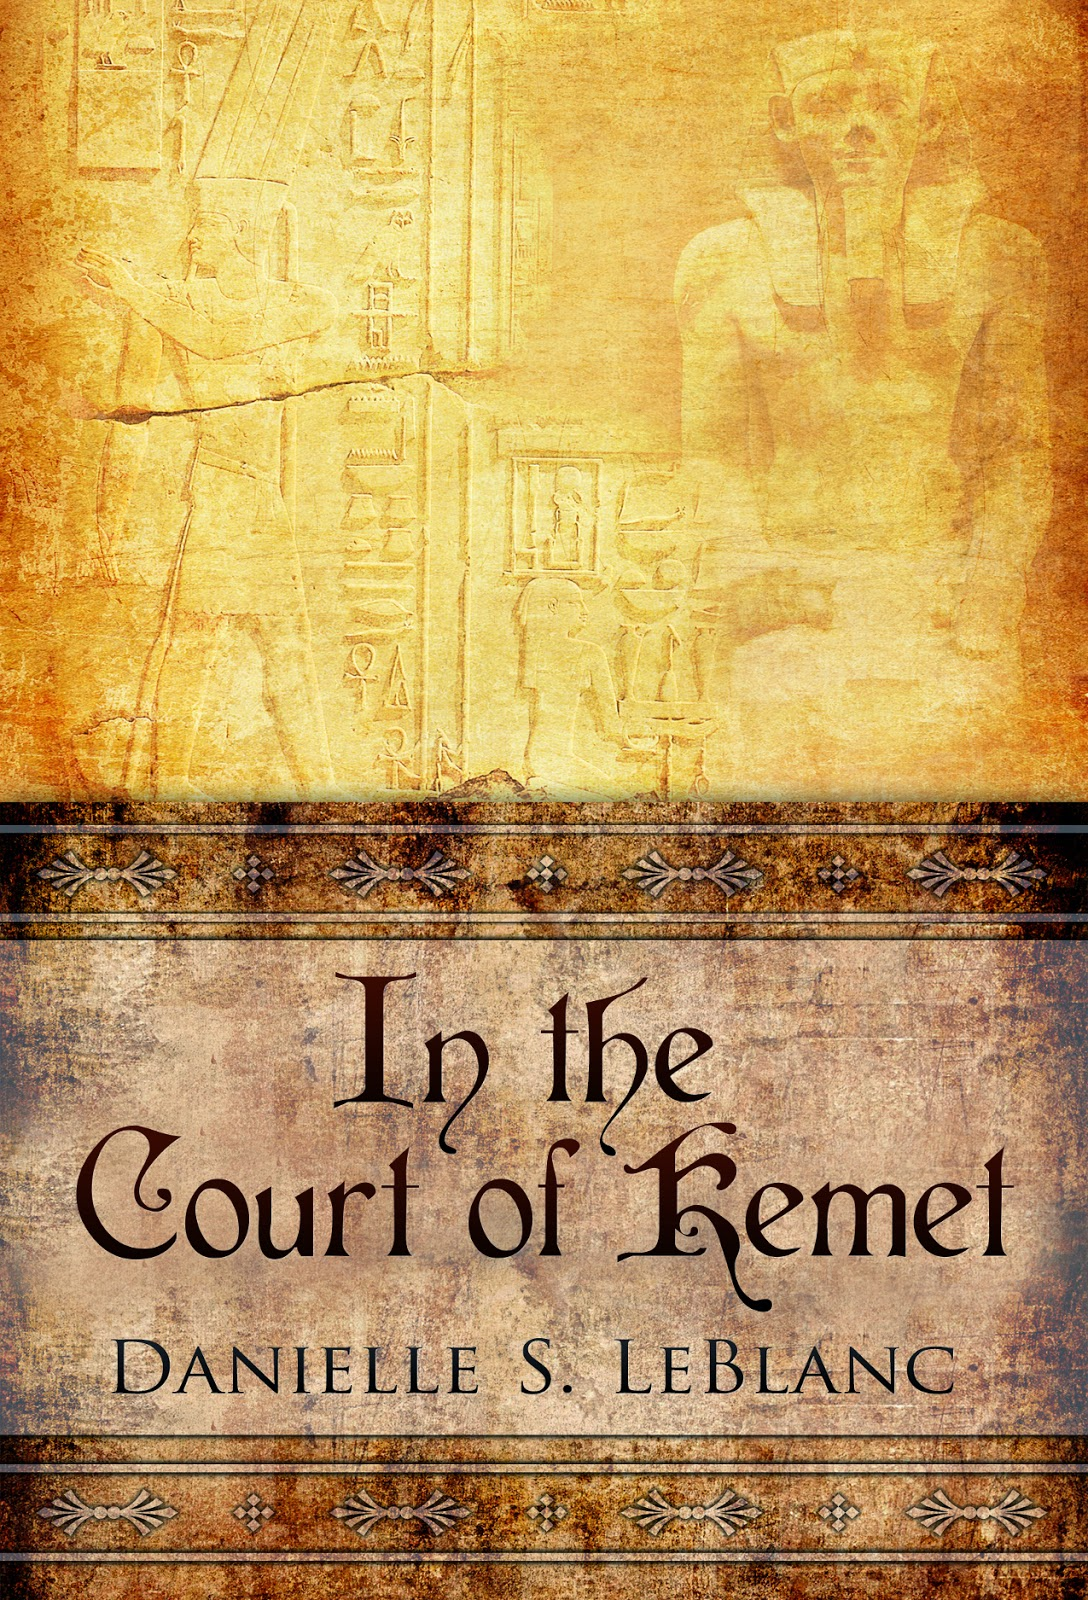 http://poorandglutenfree.blogspot.ca/2014/09/my-ancient-egyptian-romance-novel-is.html